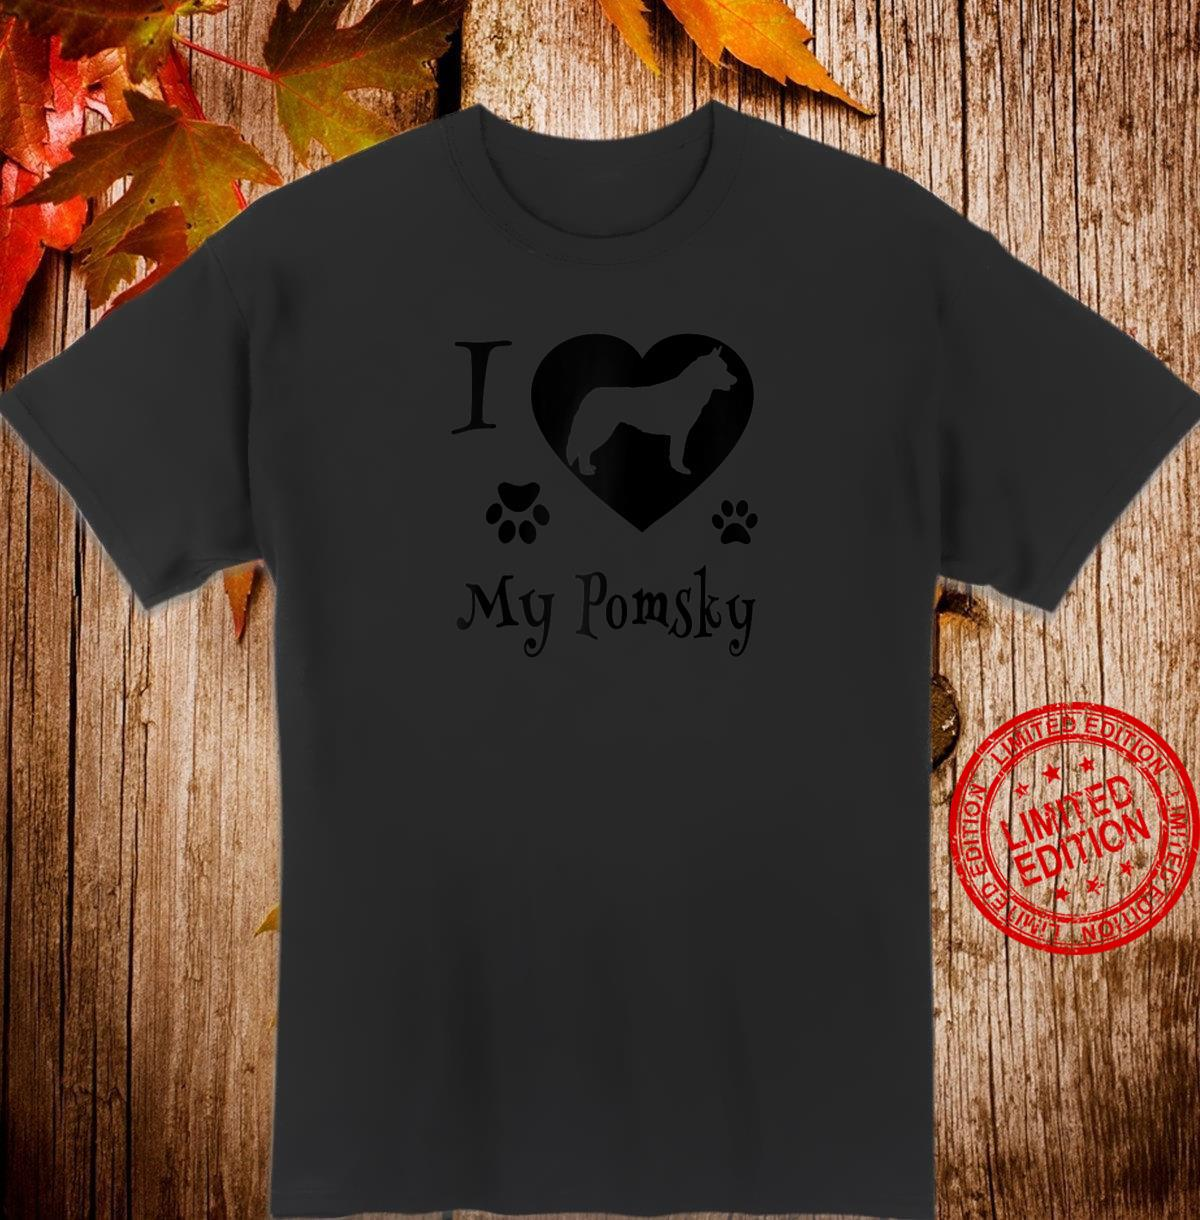 Pomsky Shirt Design for Pomsky Dogs Shirt